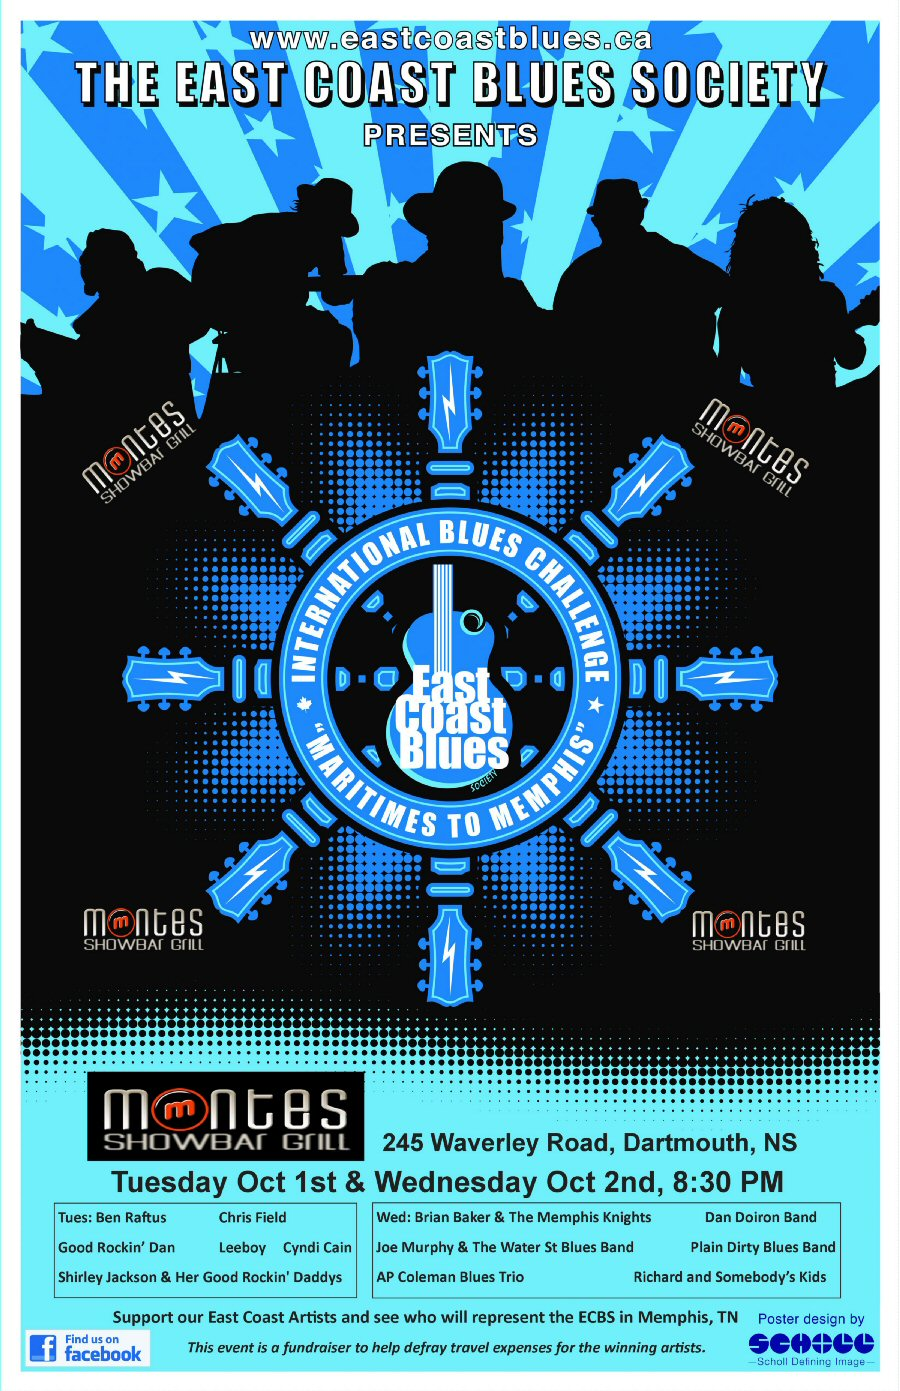 East Coast Blues Society International Blues Challenge competition will be held at Montes Showbar & Grill Tuesday October 1st and Wednesday Octobaer 2nd, 8:30PM